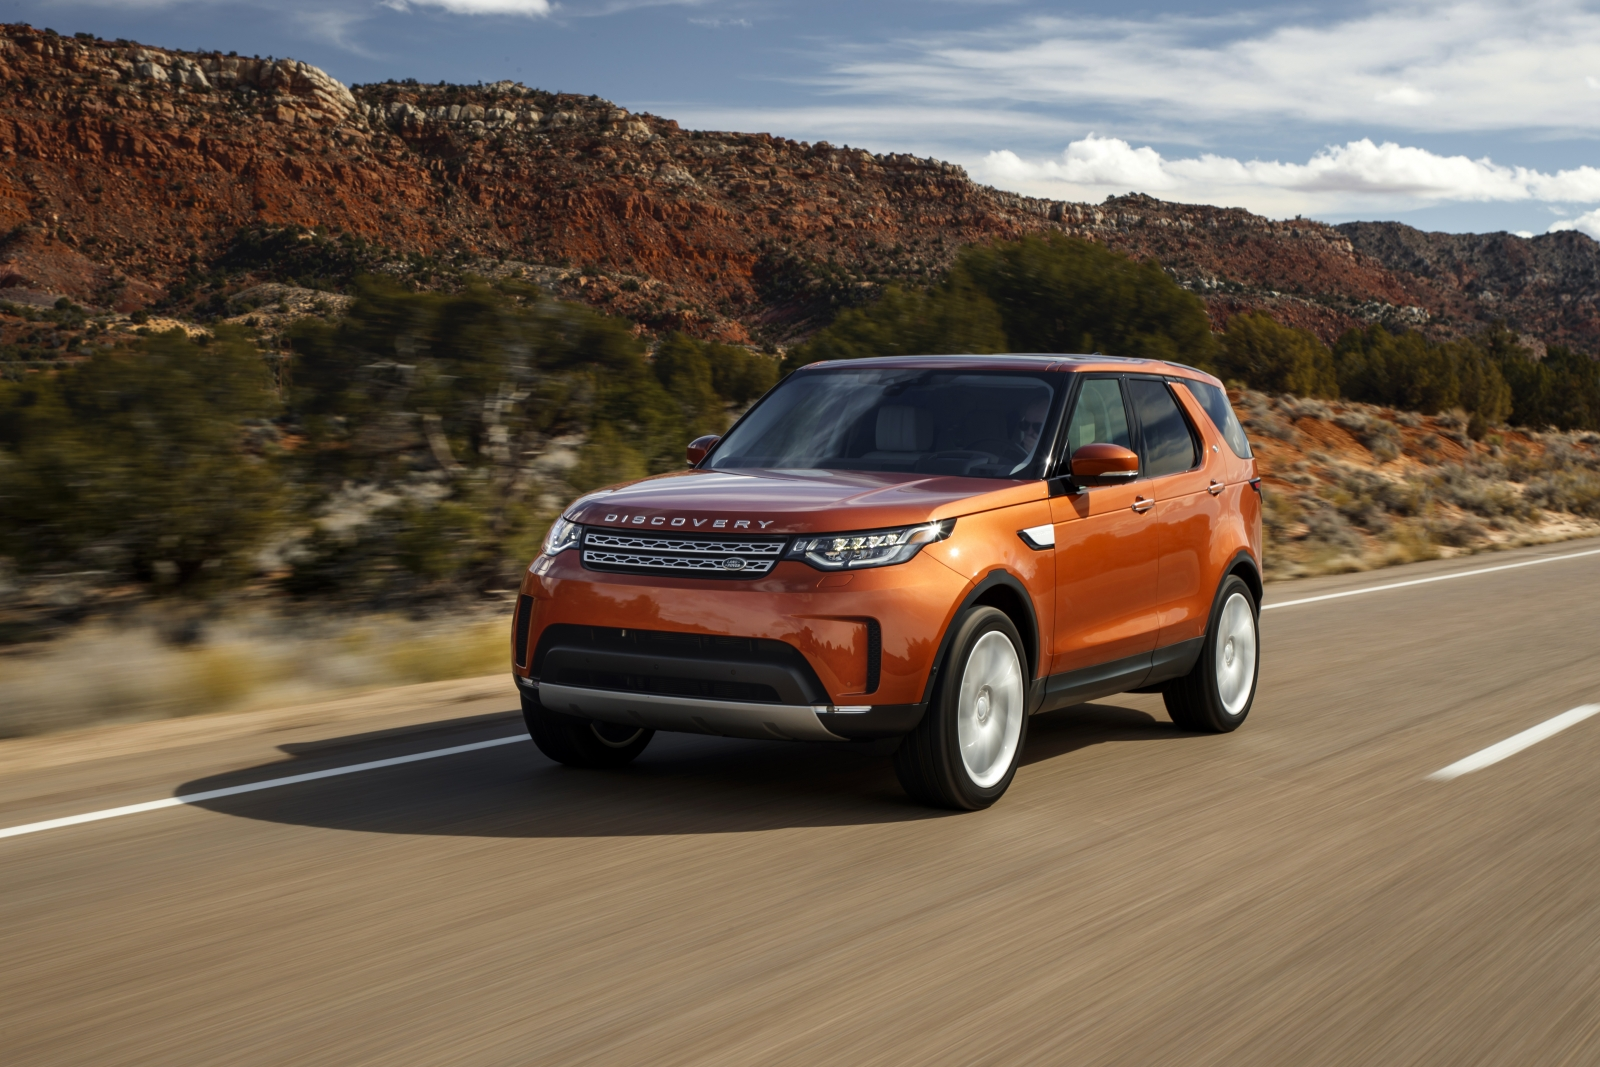 land rover discovery 2017 review an adventure through utah in the new 7 seat suv. Black Bedroom Furniture Sets. Home Design Ideas